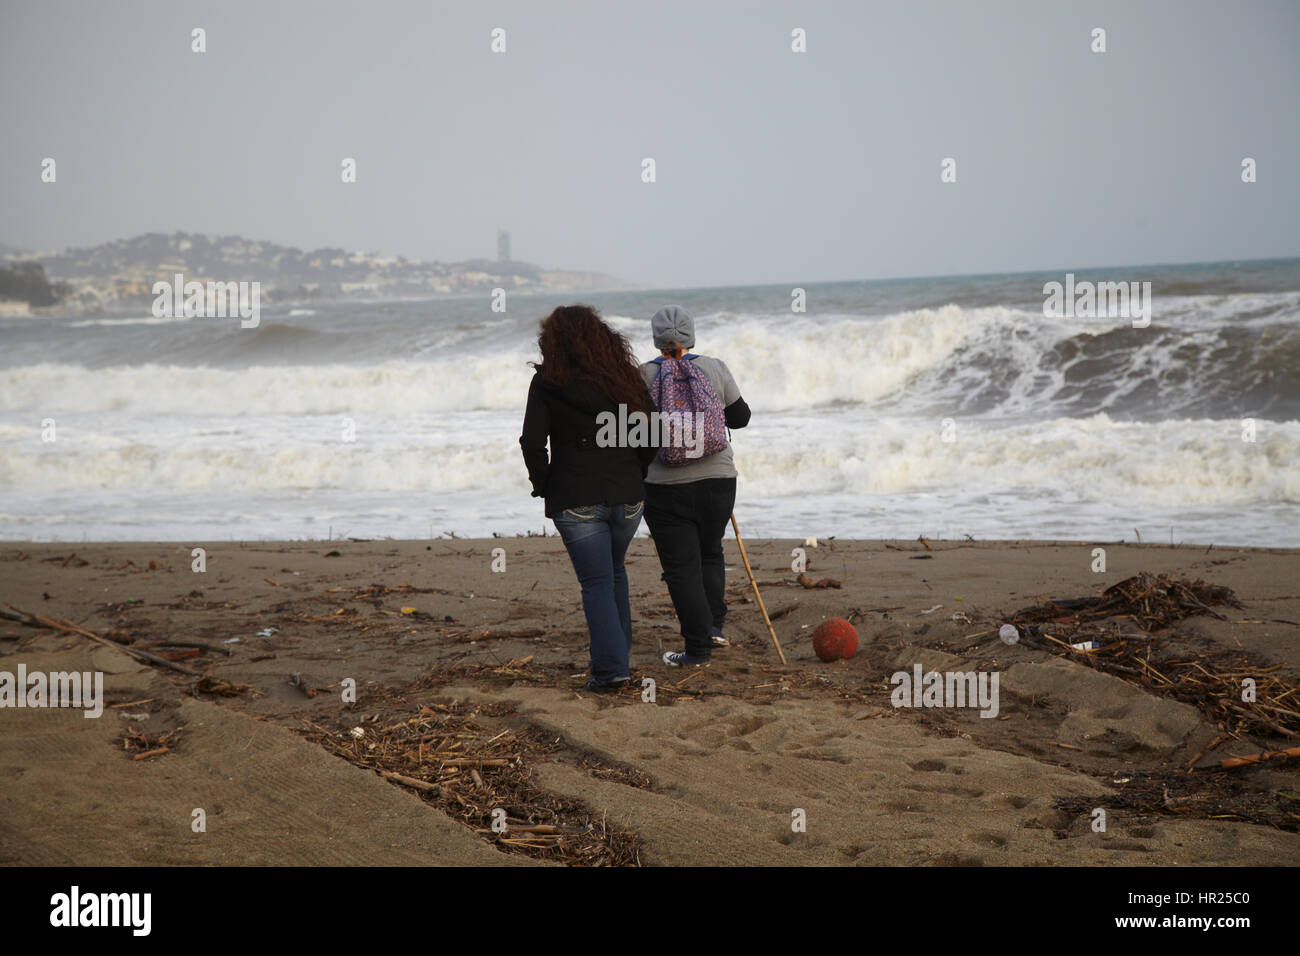 Two girls looking att  big waves in the beach of Malaga. - Stock Image